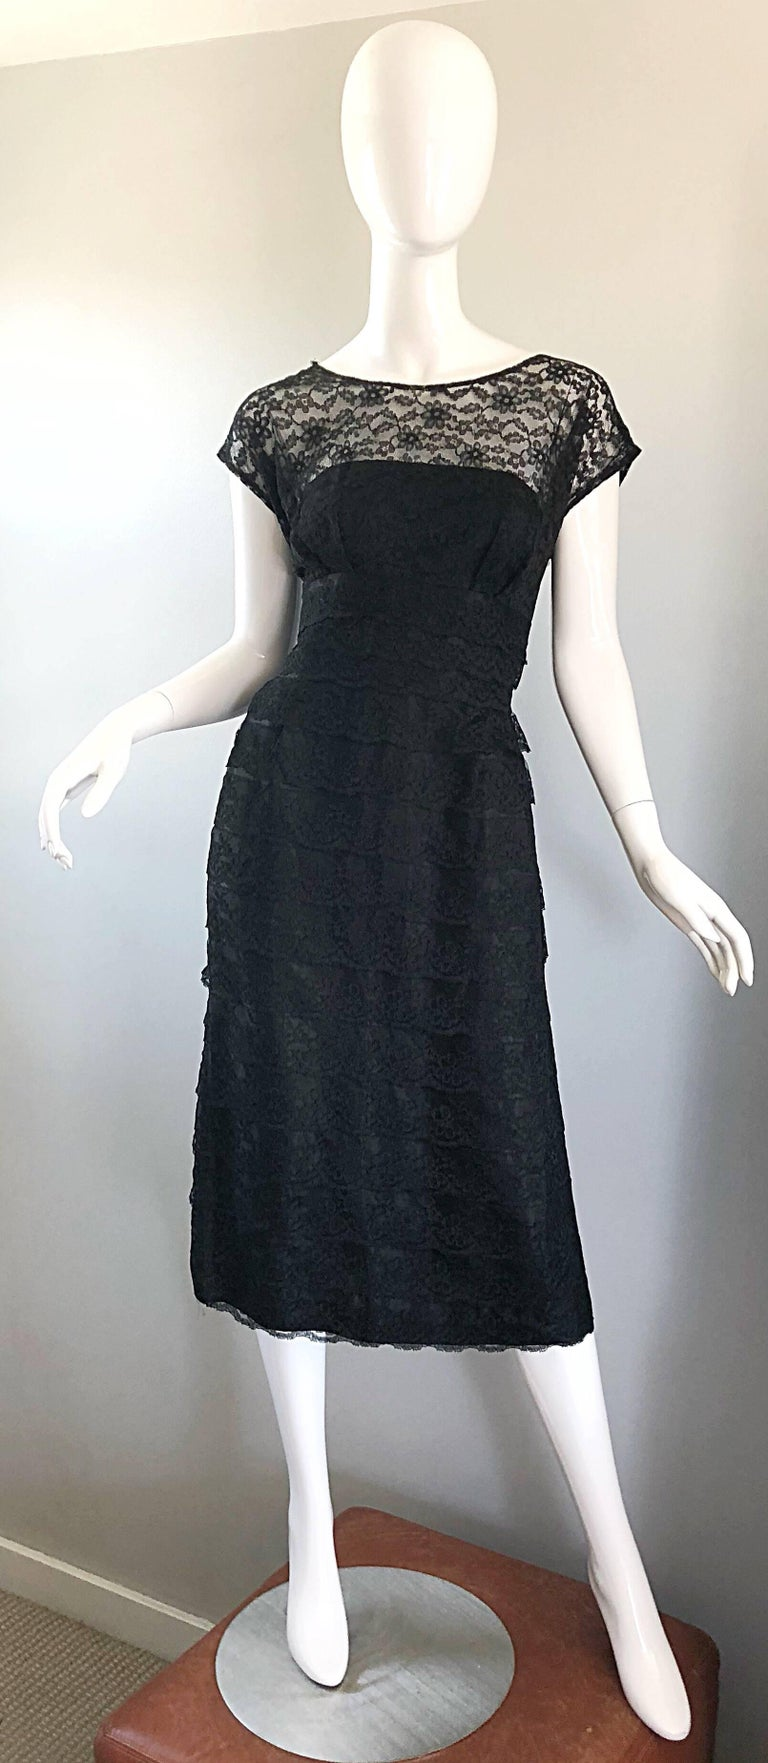 Chic 1950s black French lace cocktail dress! Features luxurious black French lace, with a fitted bodice and flattering forgiving skirt. Full metal zipper with hook-and-eye closure. Couture quality, with heavy attention to detail. The perfect classic